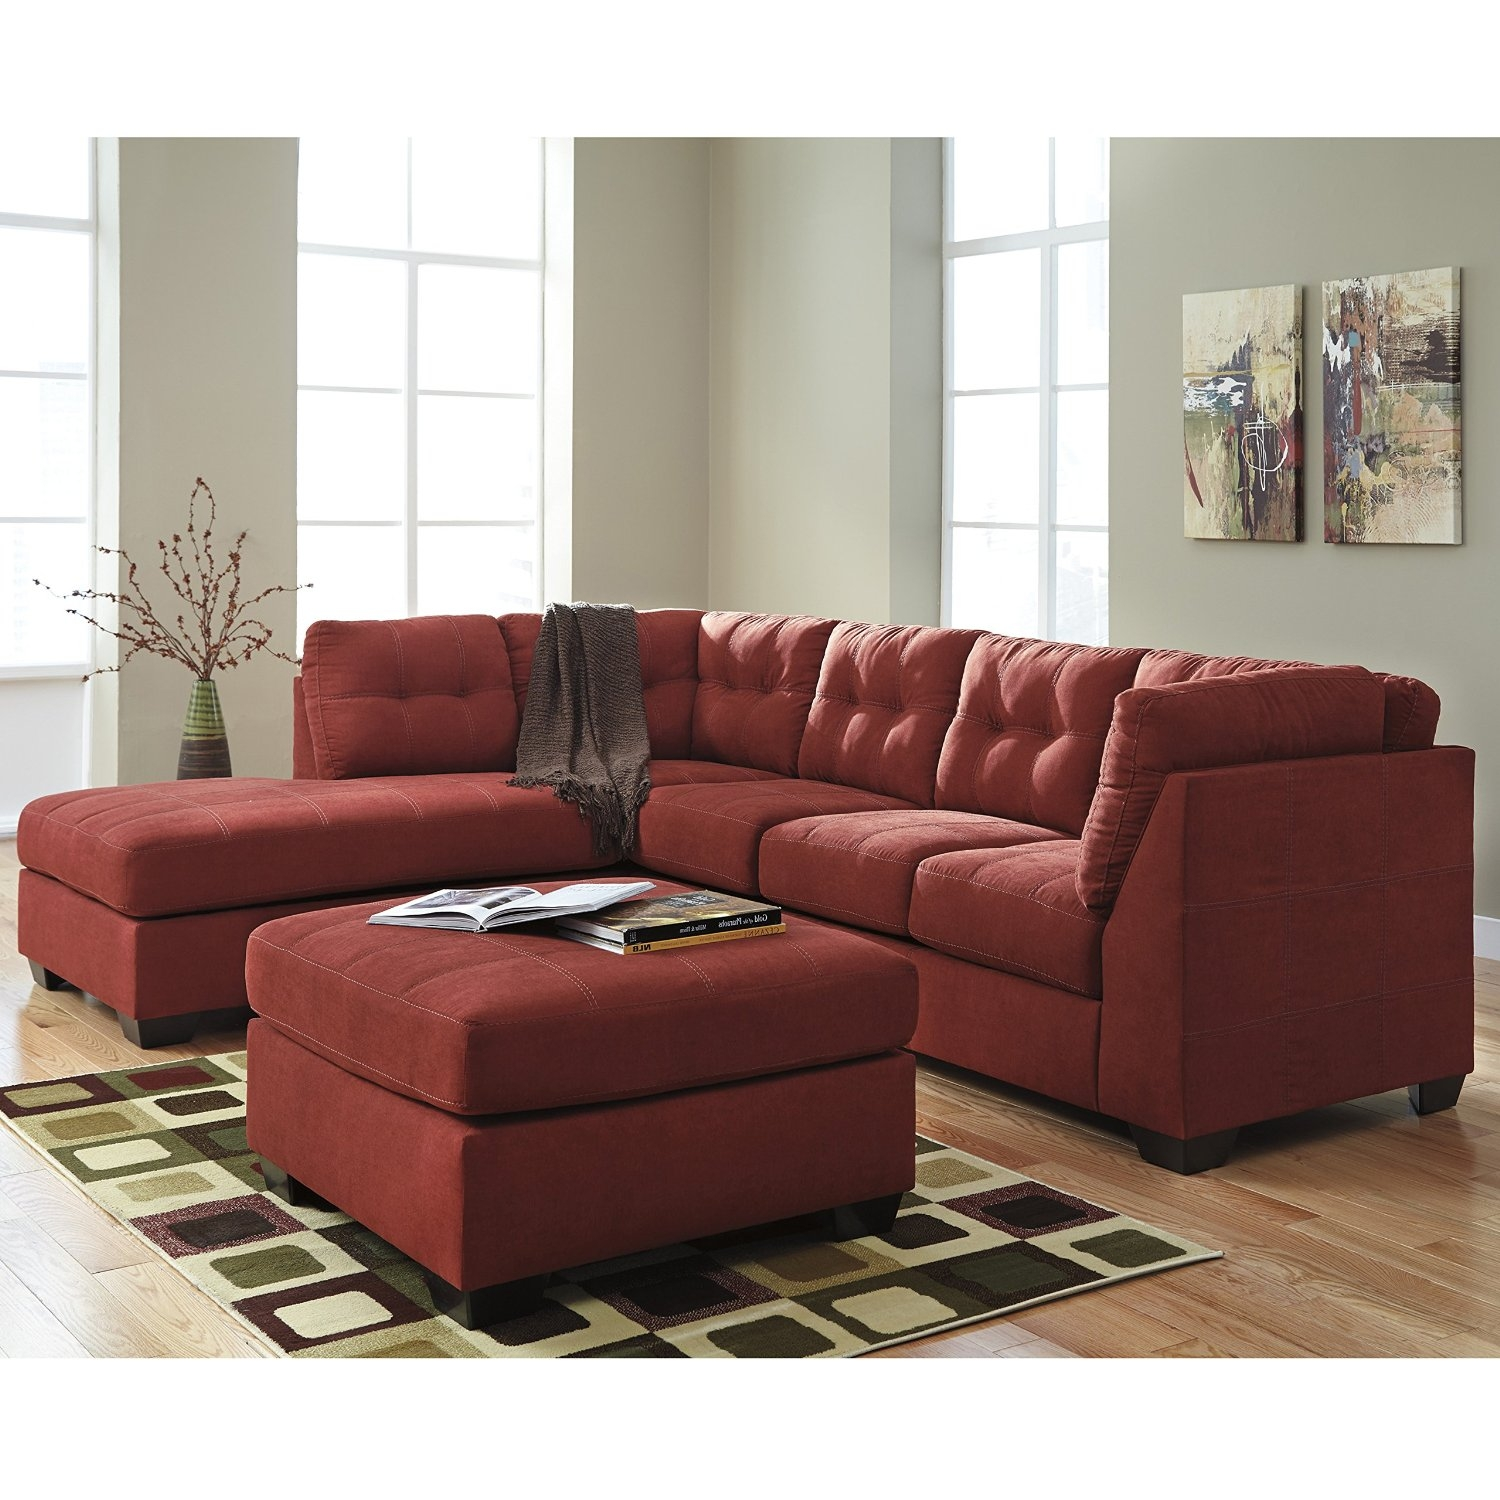 Berkline Sectional Sofa 14 With Berkline Sectional Sofa Bible Throughout Berkline Sectional Sofa (Image 3 of 15)